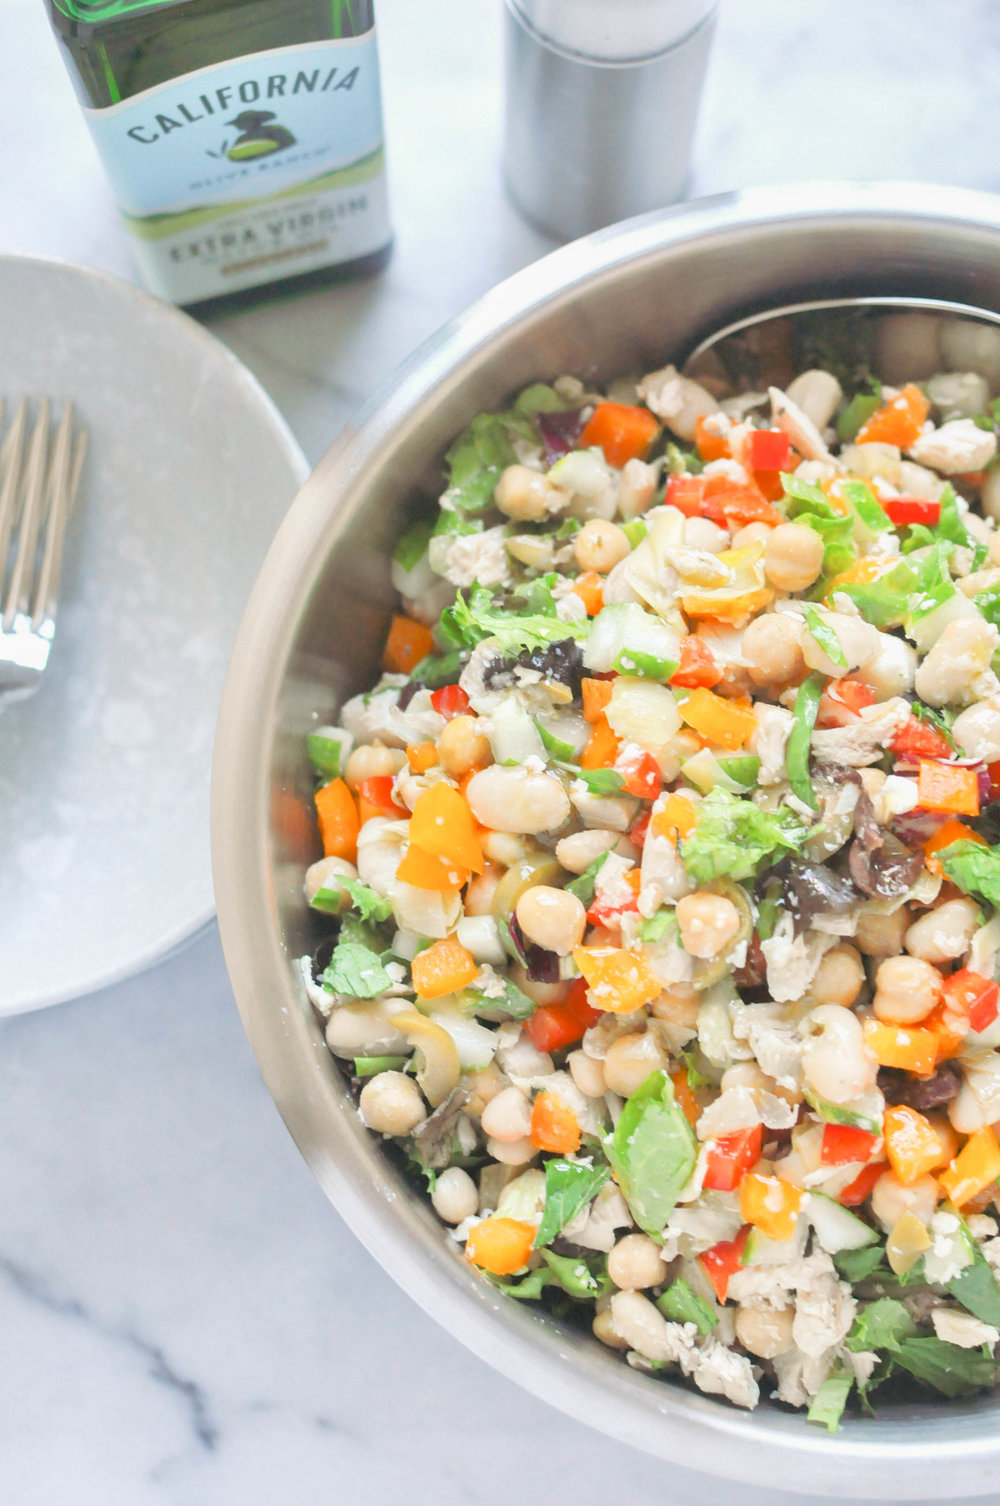 Easy Mediterranean Chicken Salad - This Mediterranean chicken salad is everything you need in an easy, quick weeknight meal. It's full of delicious flavors - artichokes, bell peppers, beans, chickpeas - it has everything.